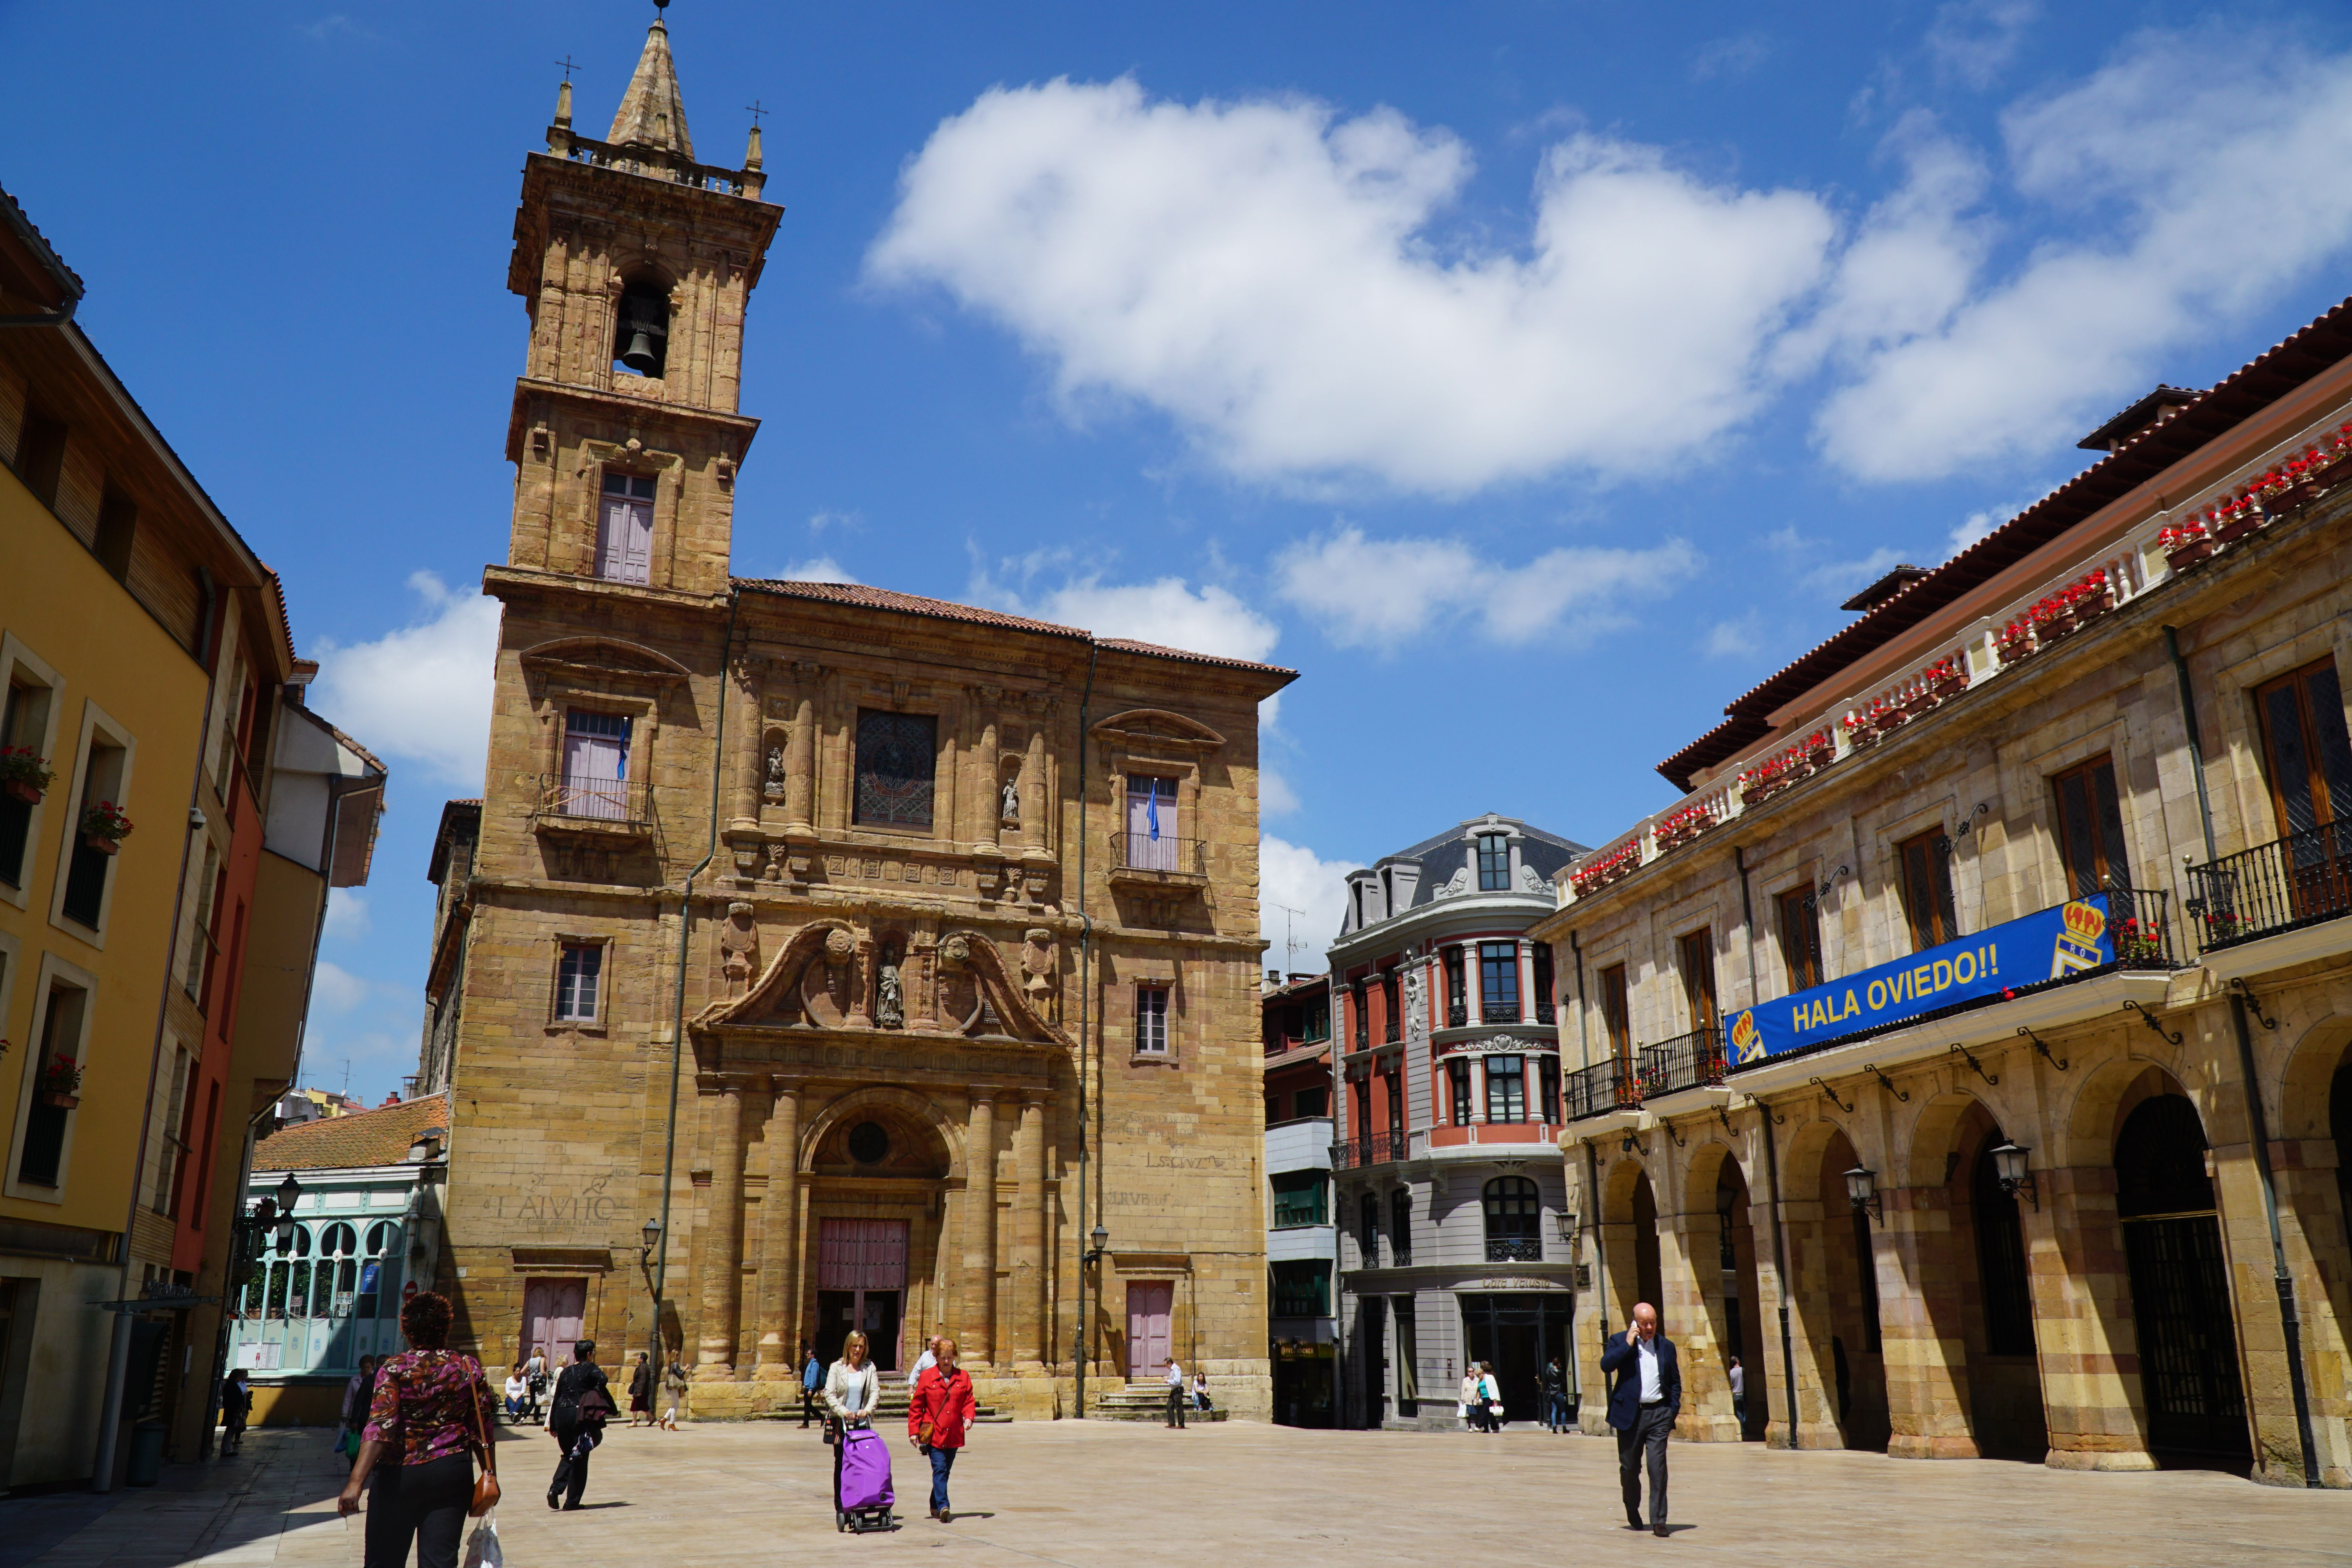 How To Get To Oviedo And What To Do There